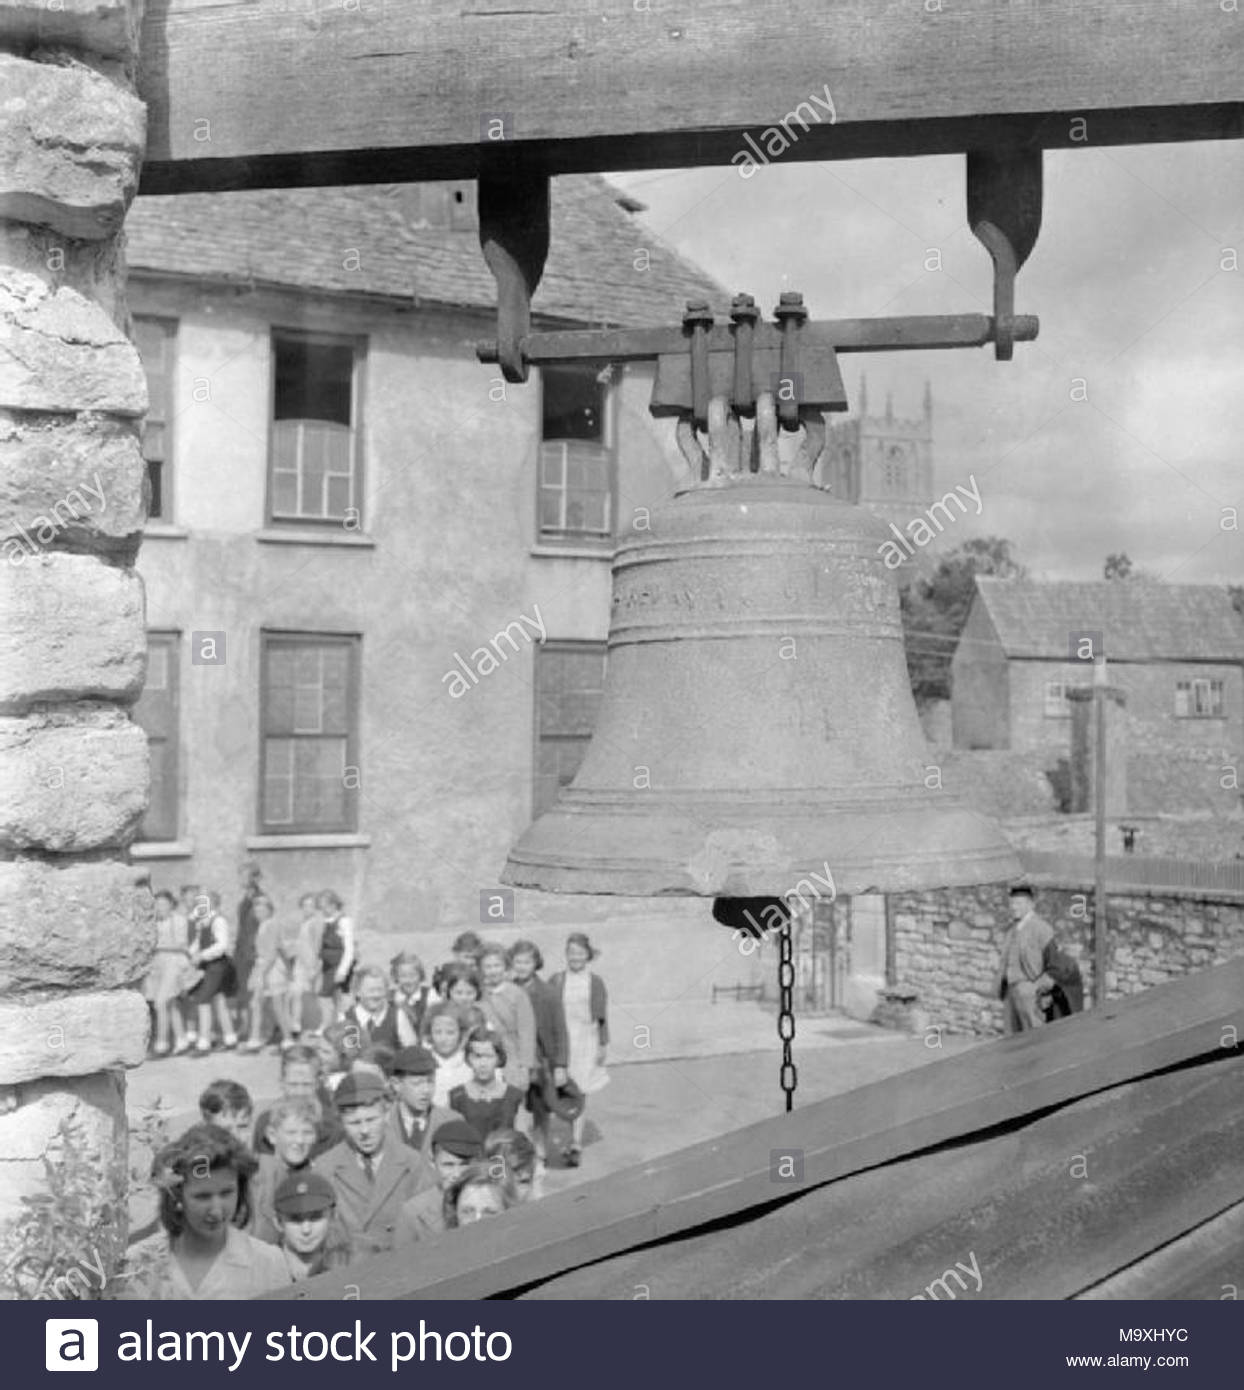 Local Government in a Country Town- Everyday Life in Wotton-under-edge, Gloucestershire, England, UK, 1944 Children file from one class to another across the playground of Katharine Lady Berkeley's Grammar School in Wotton-under-Edge. The photograph is taken looking past the bell which calls the children to class. The bell was presented to the school in 1626 by the Countess of Warwick. In the background can be seen the tower of the Church of St Mary the Virgin. - Stock Image